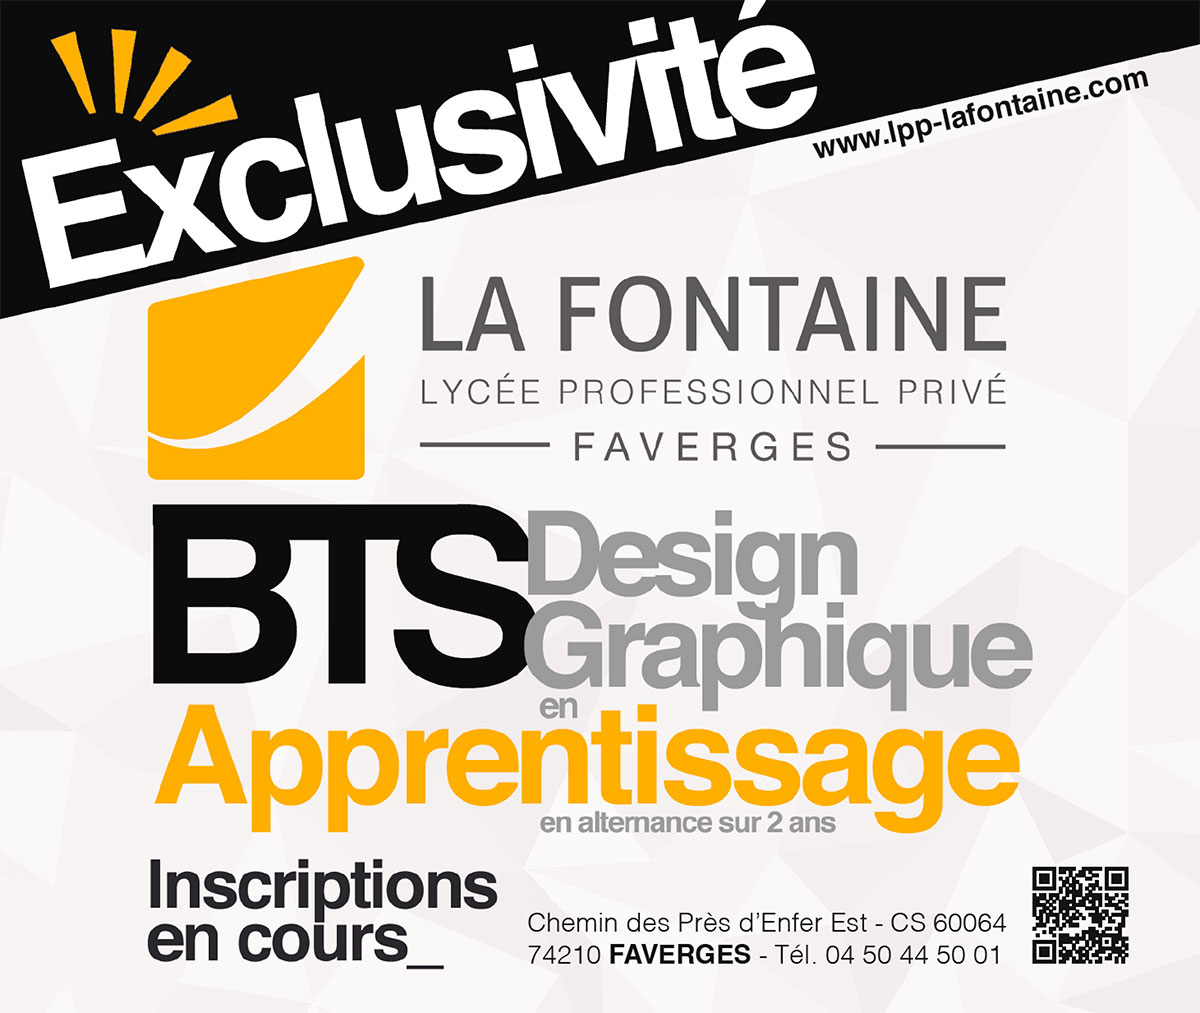 BTS Design graphique en apprentissage